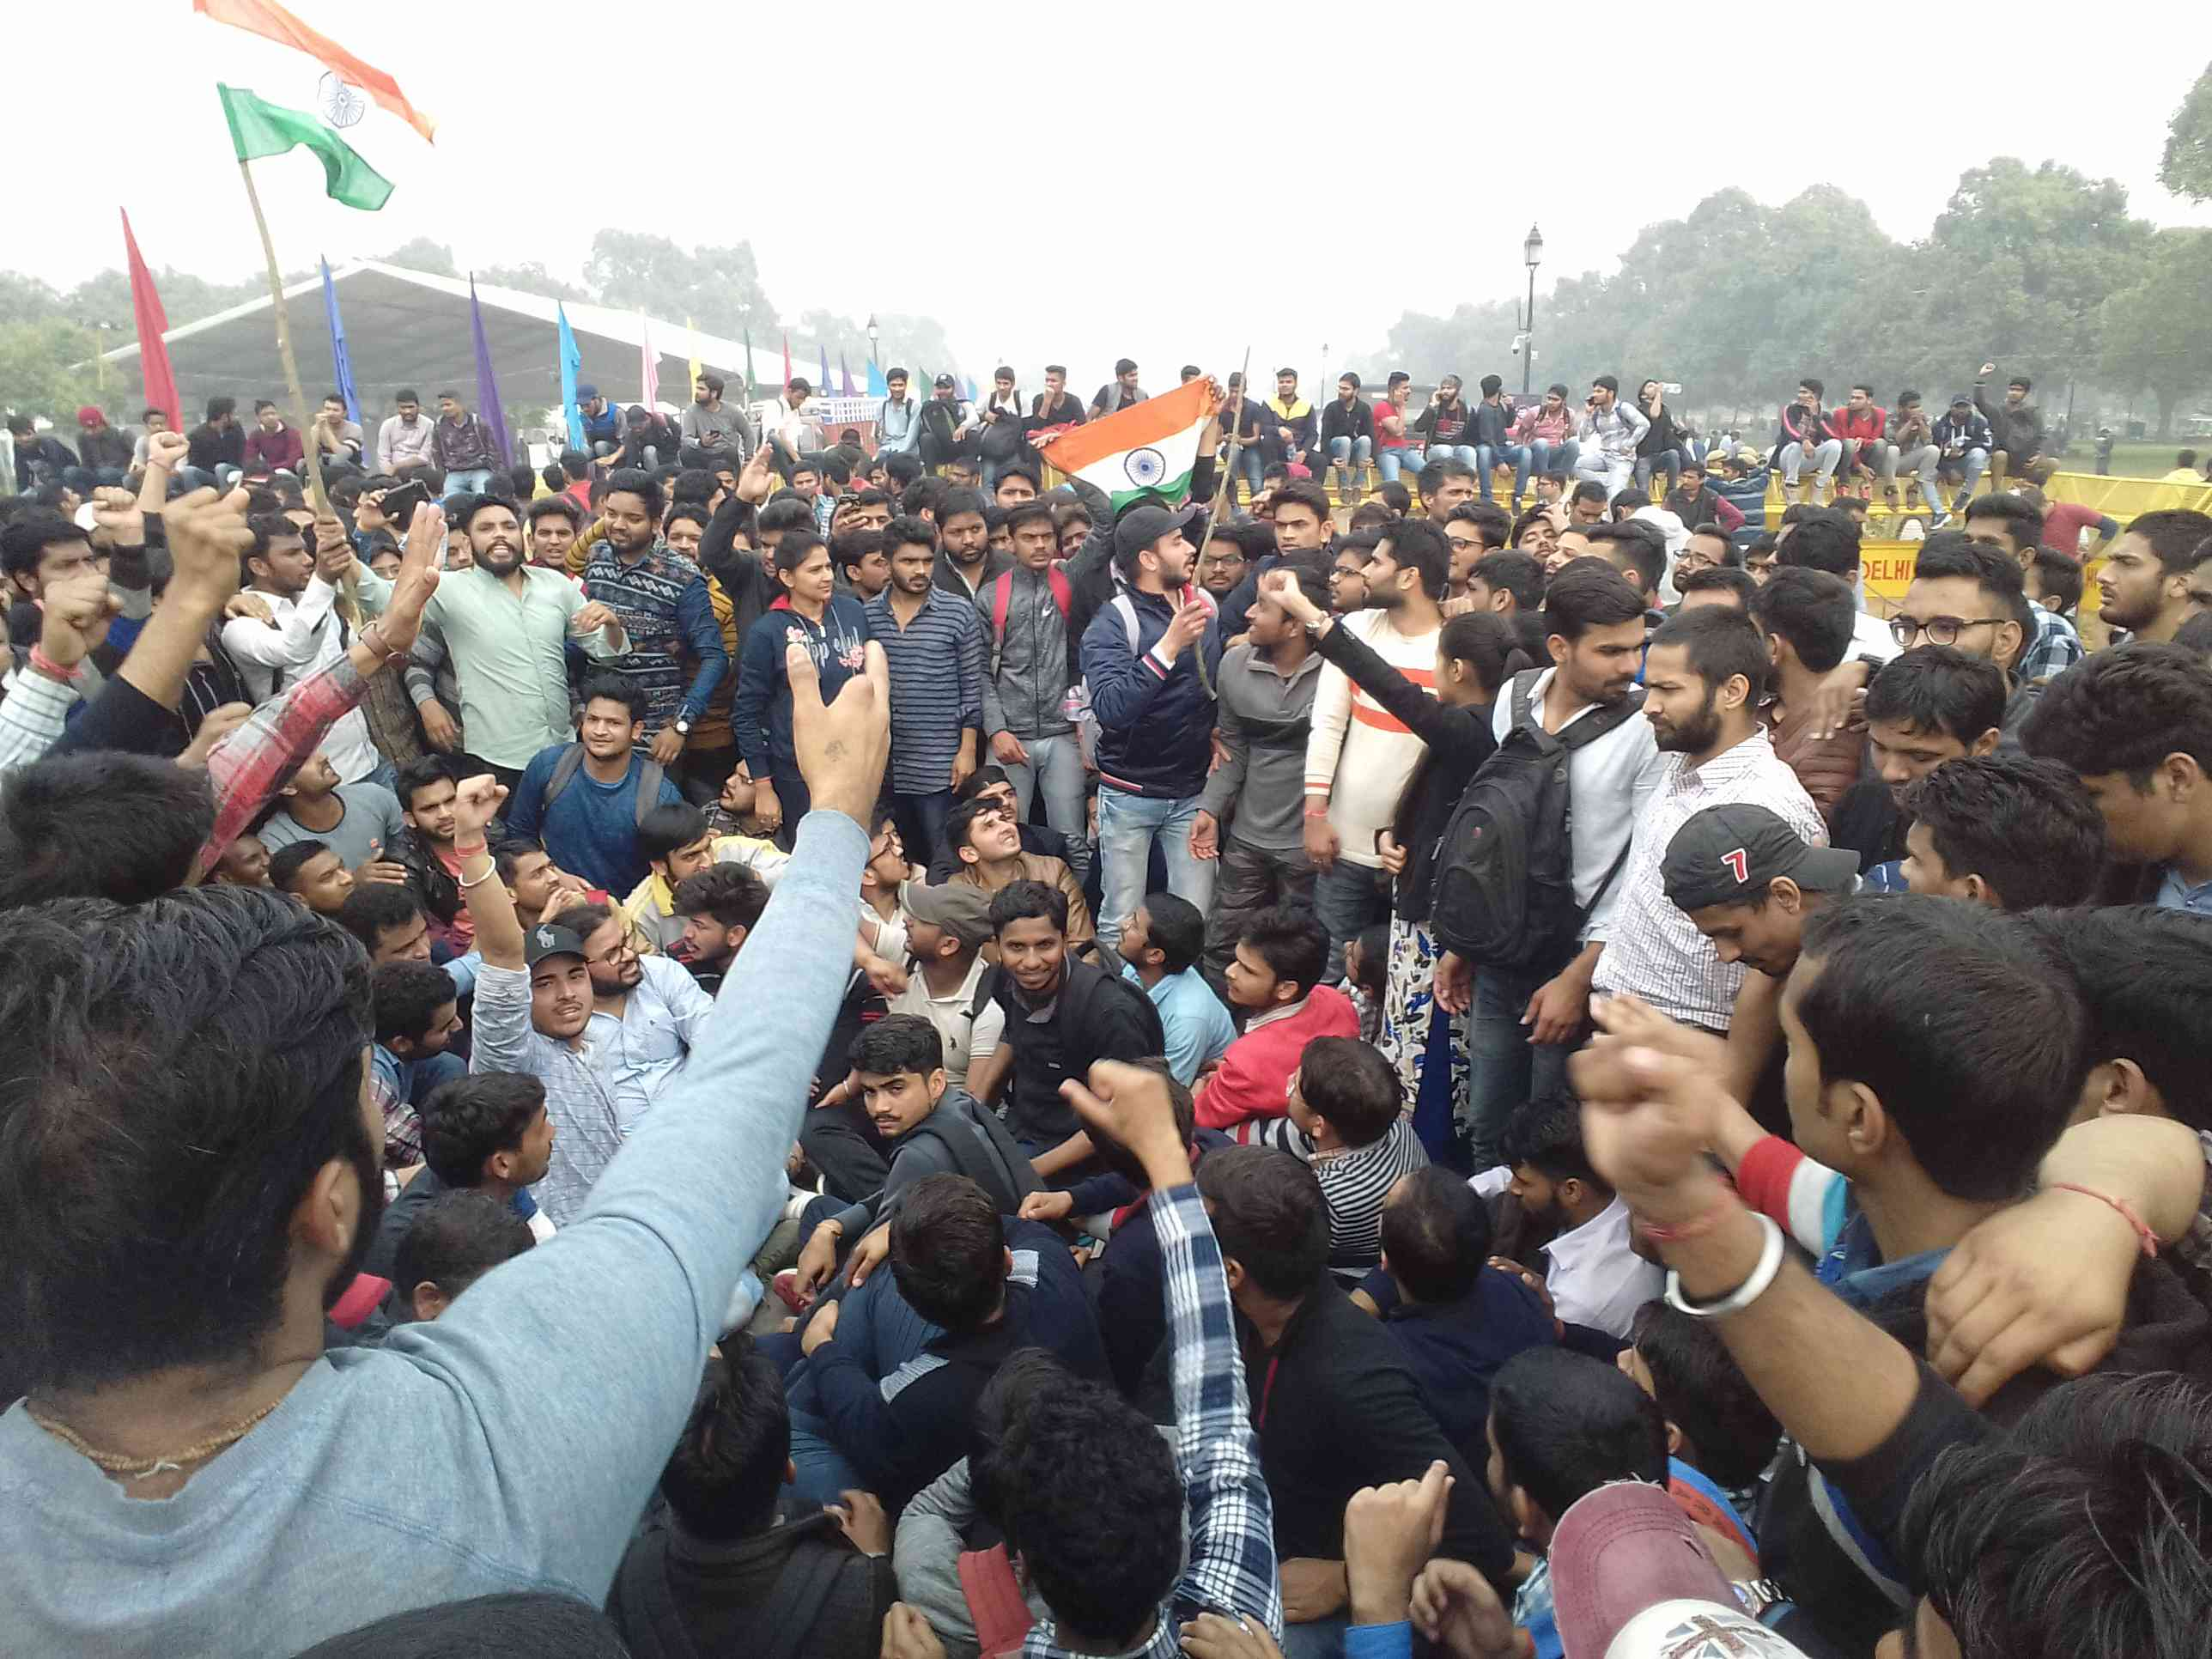 Hundreds of people gathered at India Gate in Delhi to protest against the terror attack in Pulwama. (Picture credit: Abhishek Dey)